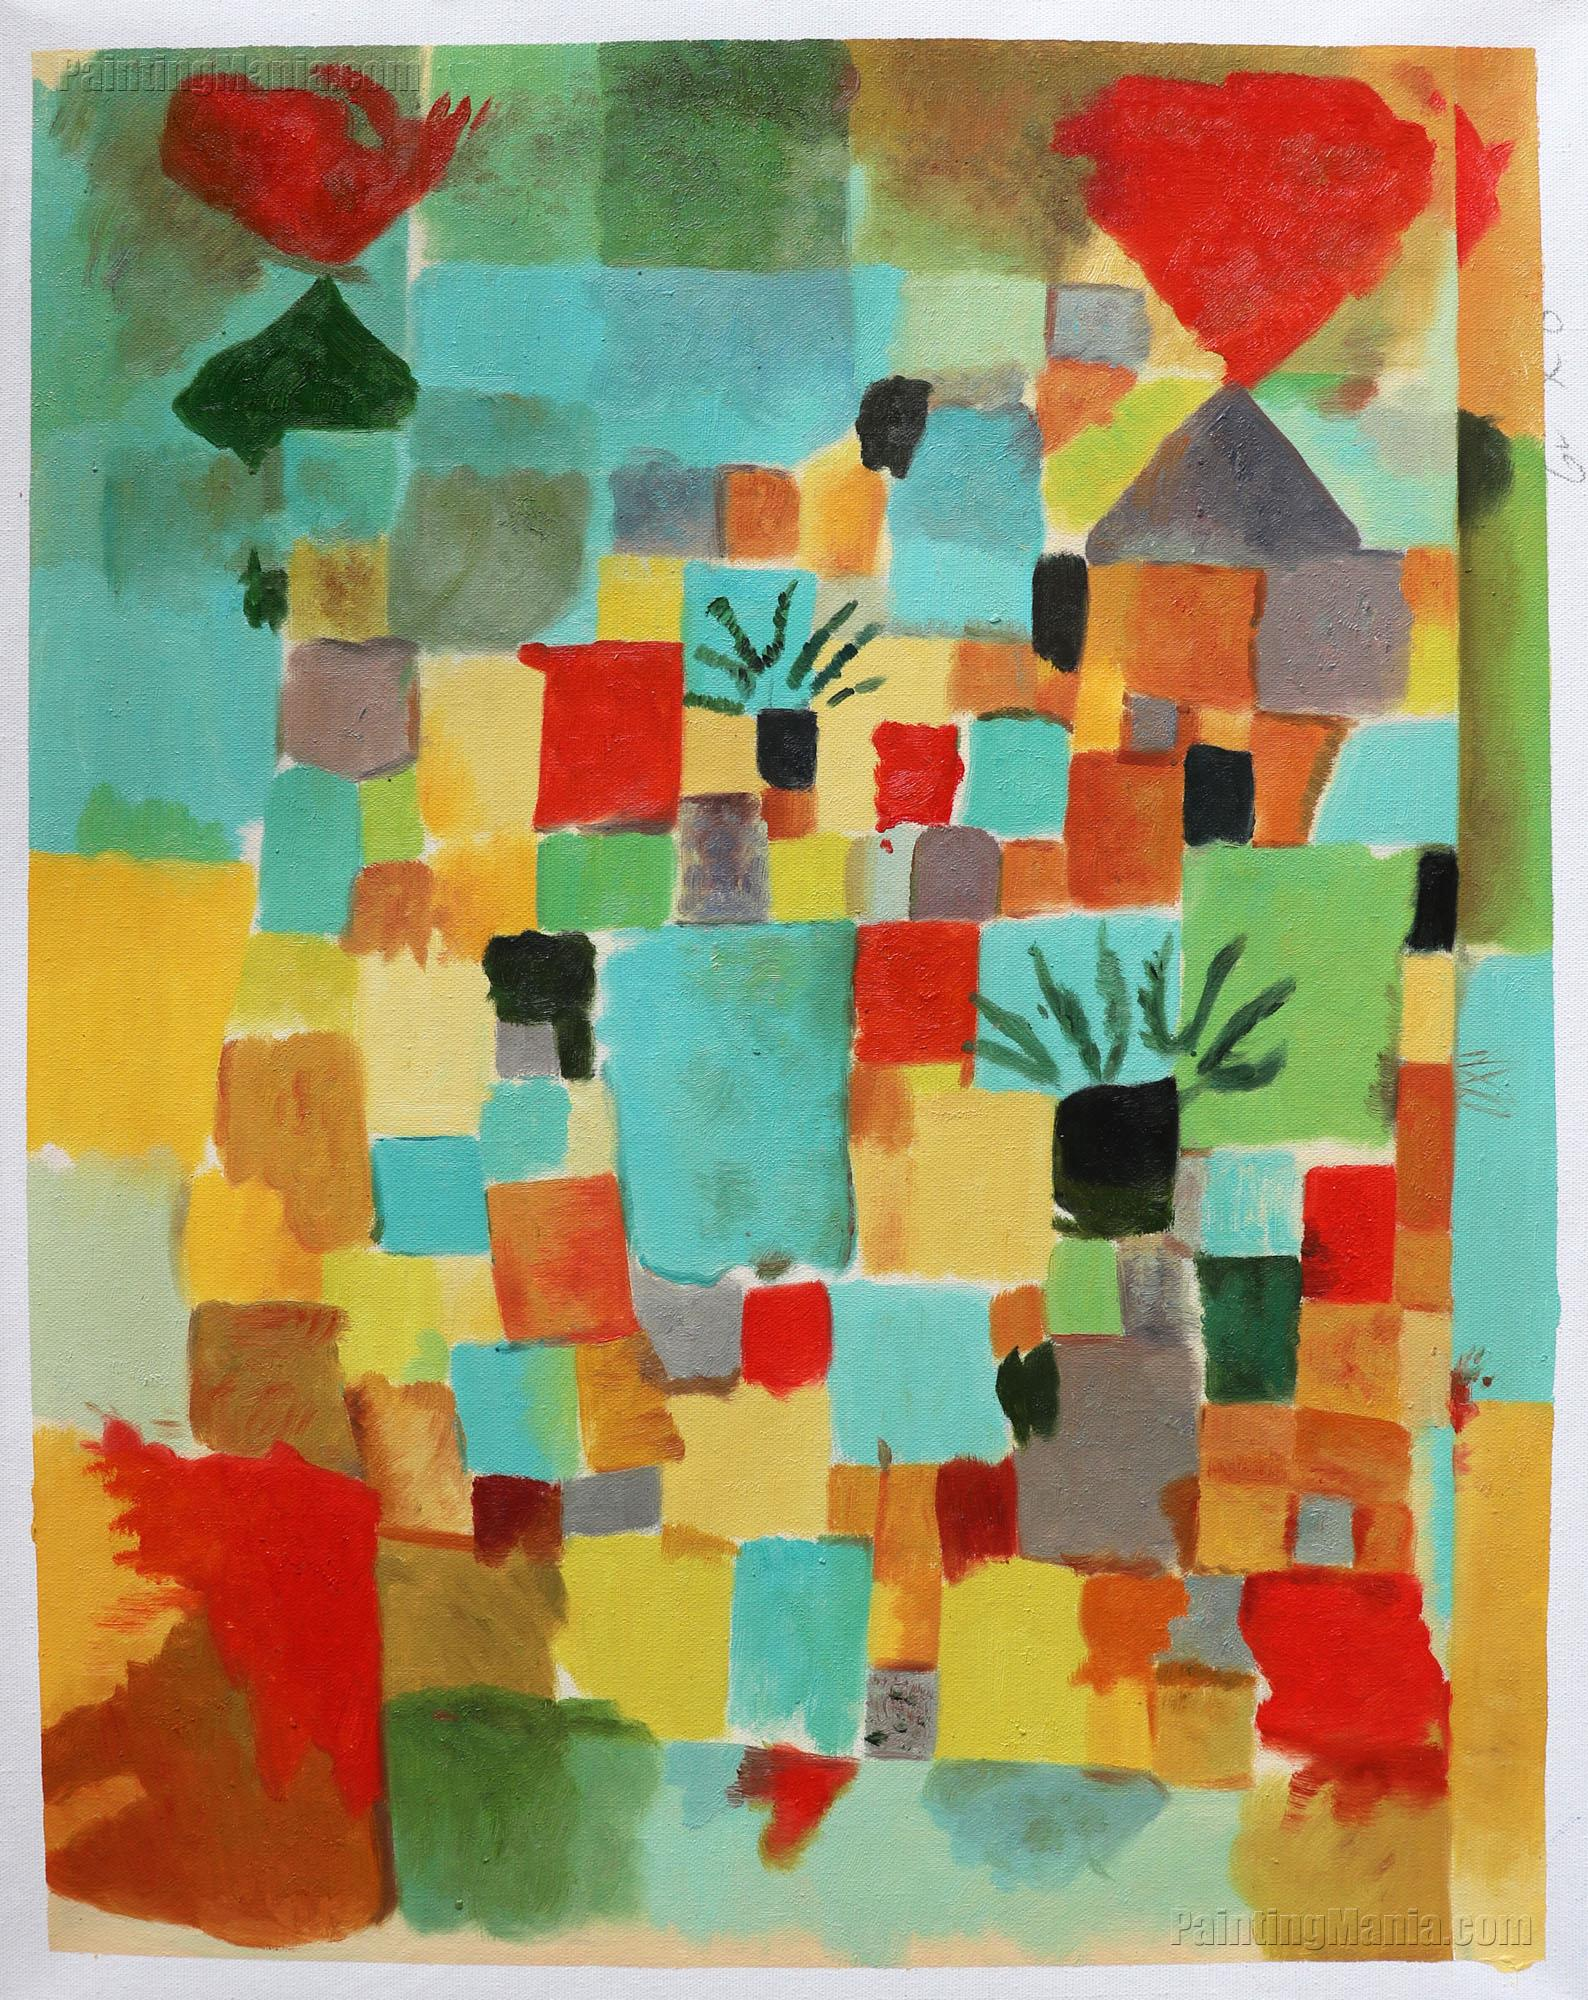 an introduction to the life of paul klee a swiss painter and graphic artist A colourful life paul klee, sailing boats  paul klee painter artist paul cezanne famous artists 2d art abstract paintings artworks of paul klee (swiss.